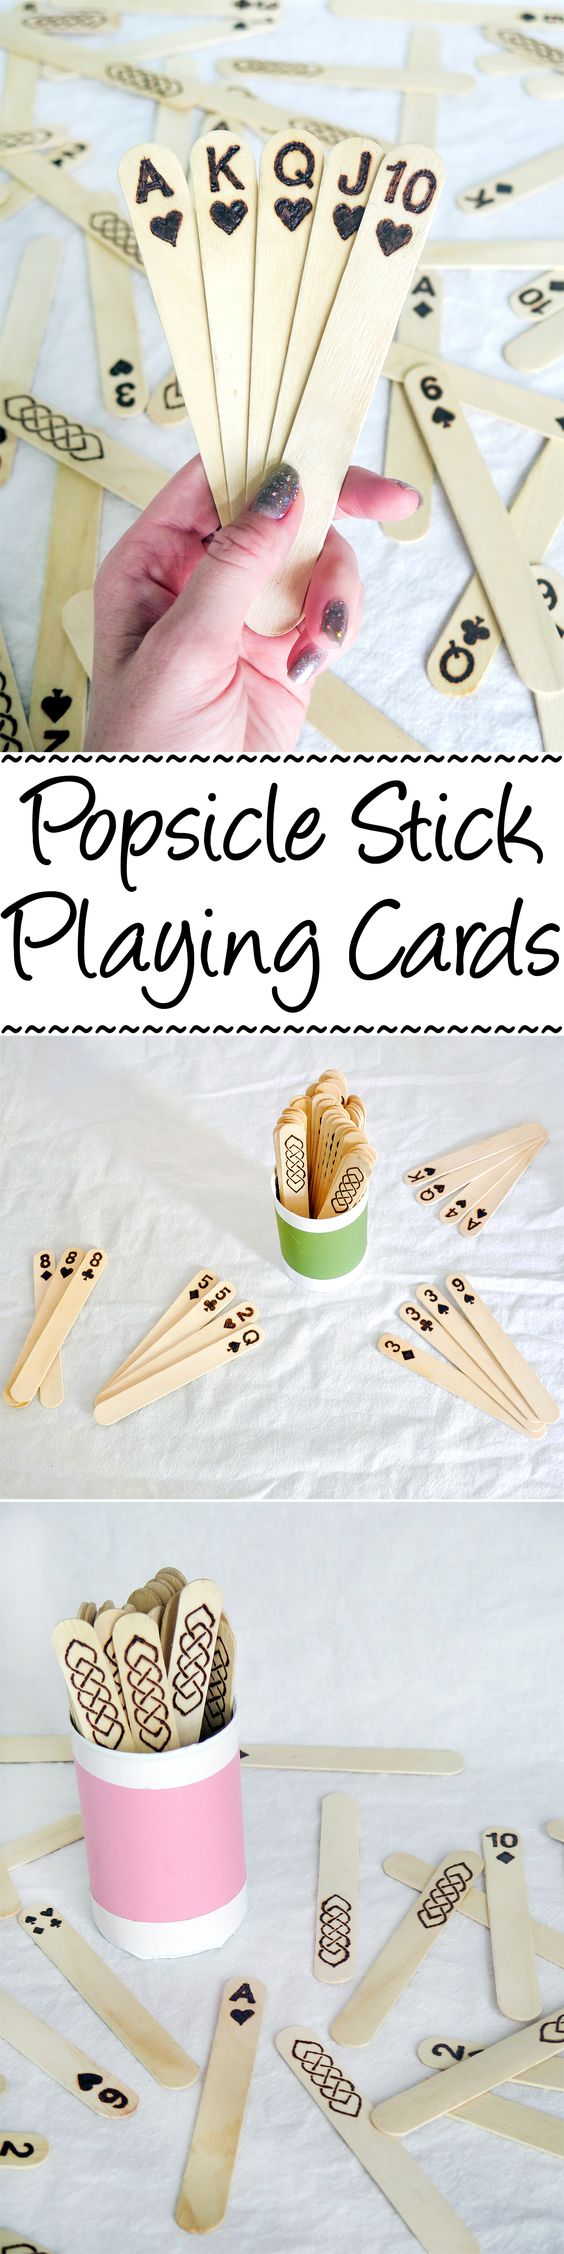 Popsicle Stick Playing Cards.